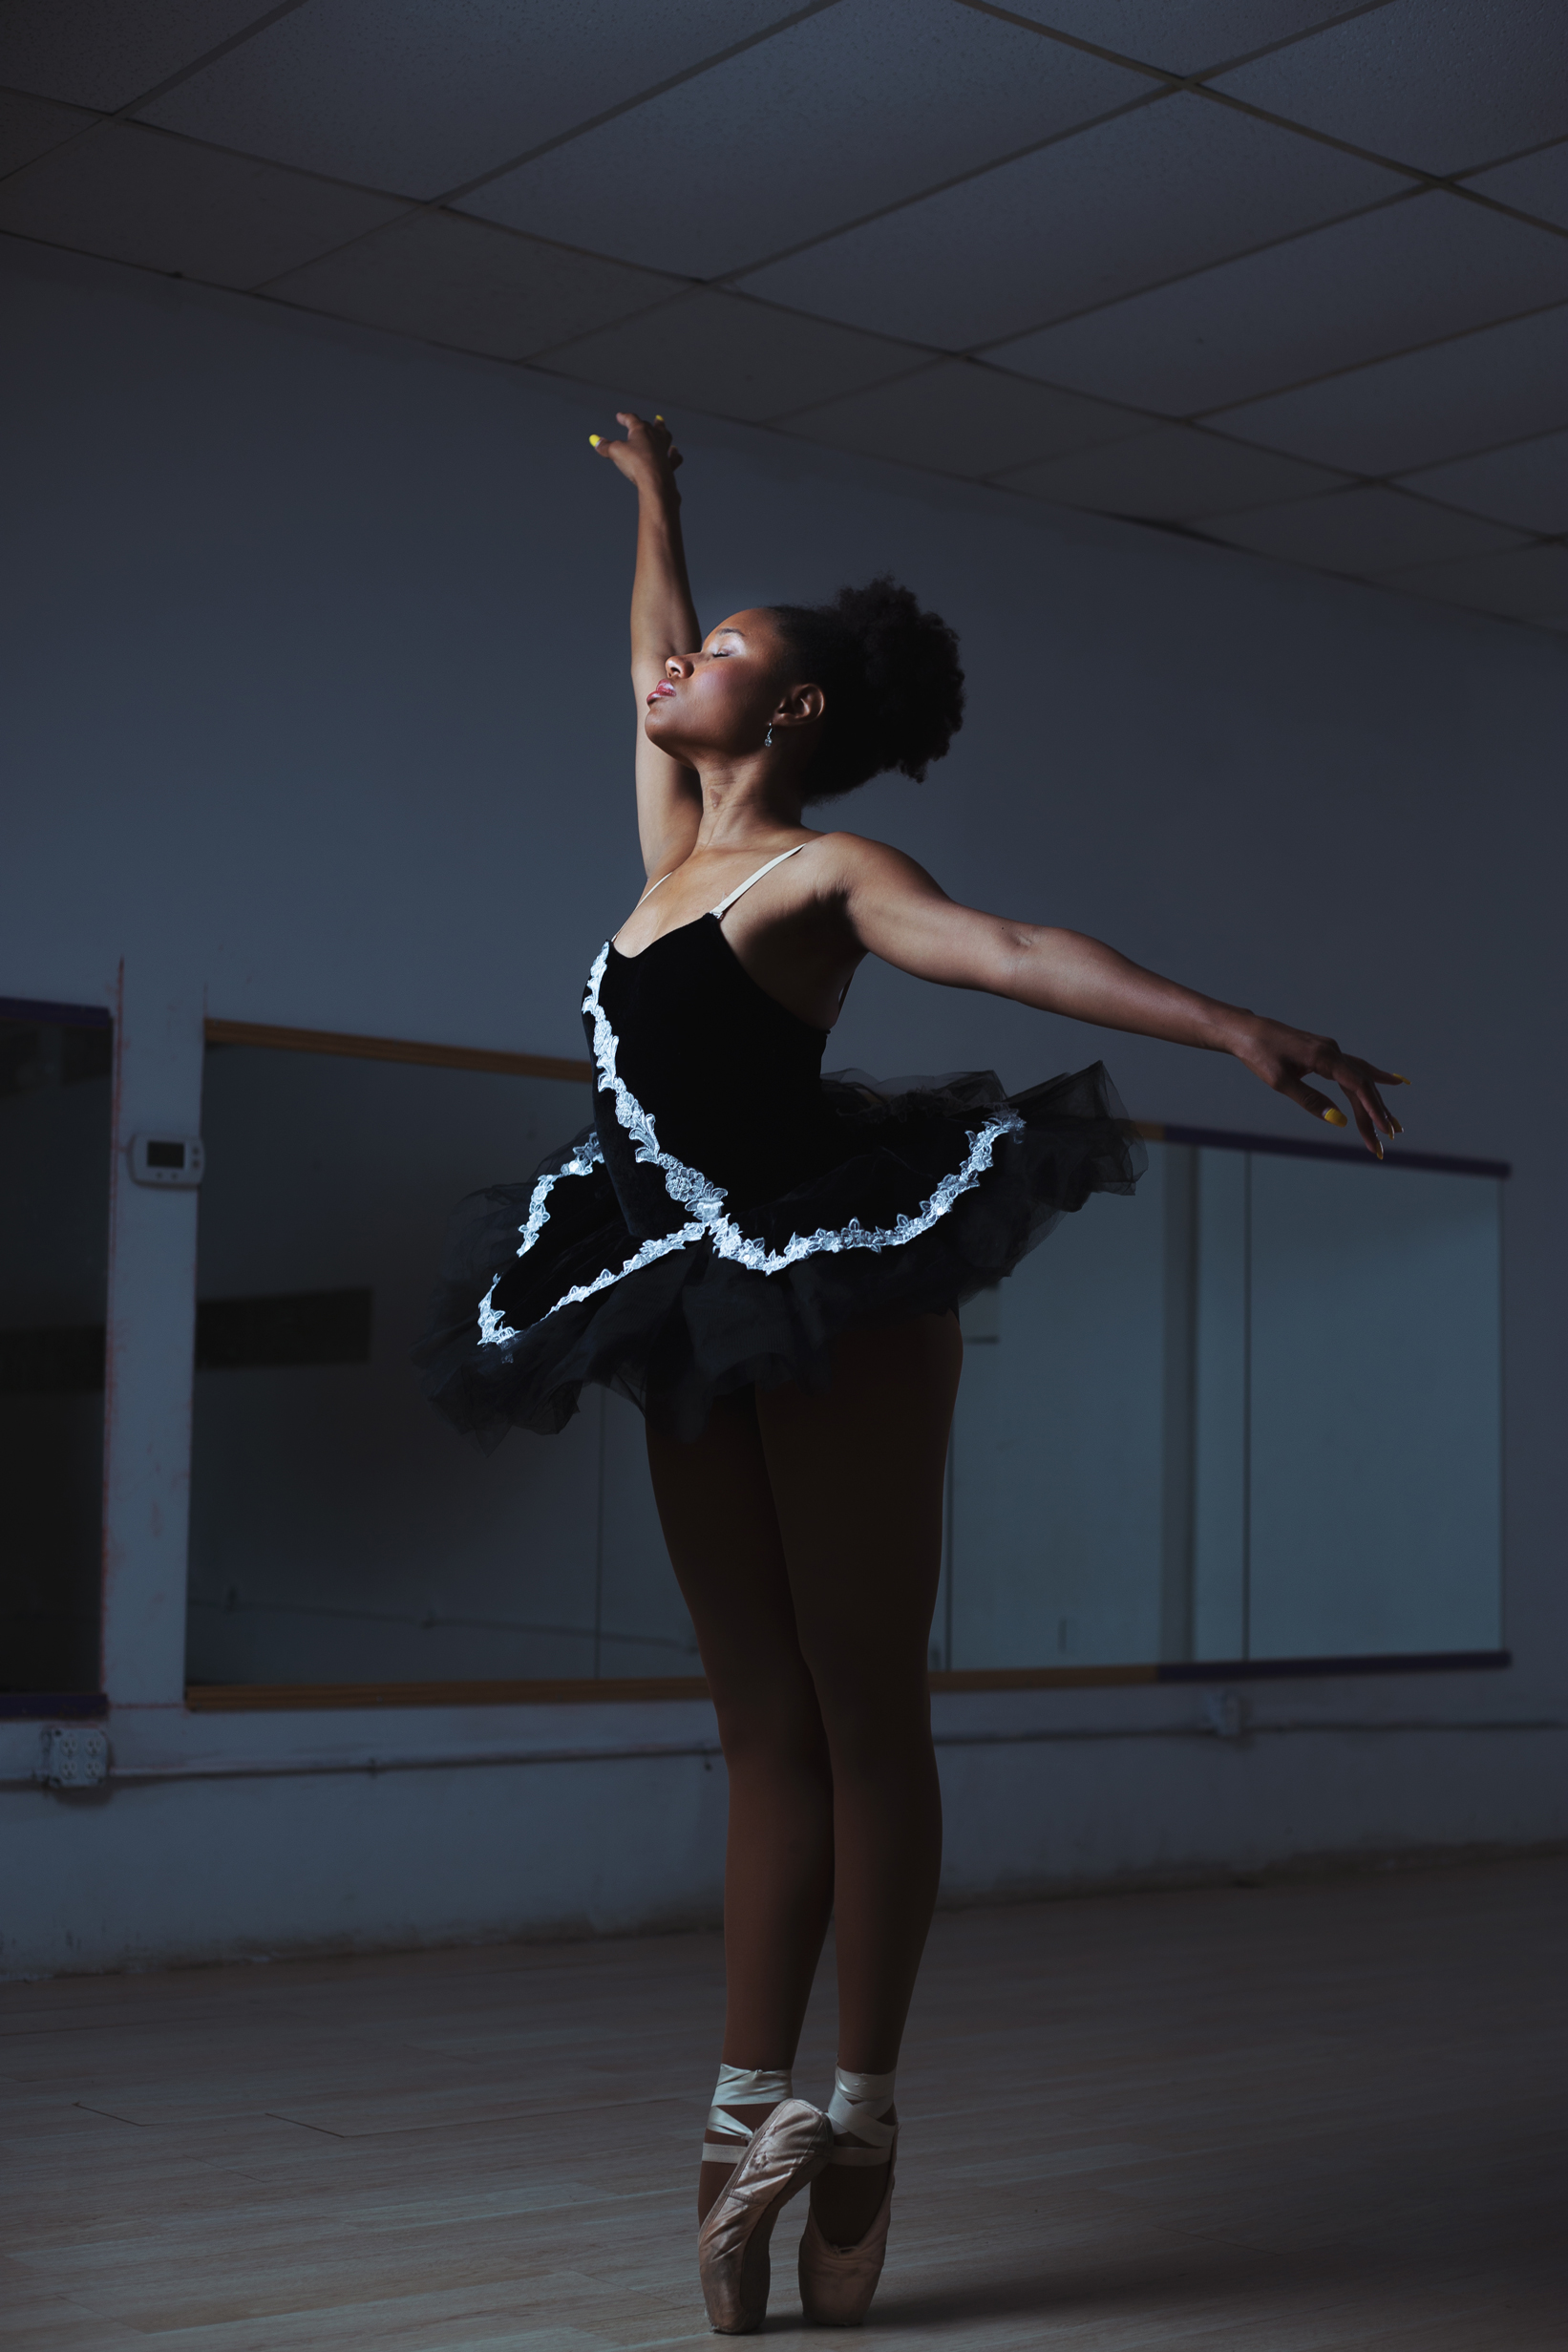 A dancer's delight- Chamber Photography Moments by Antoine Hart